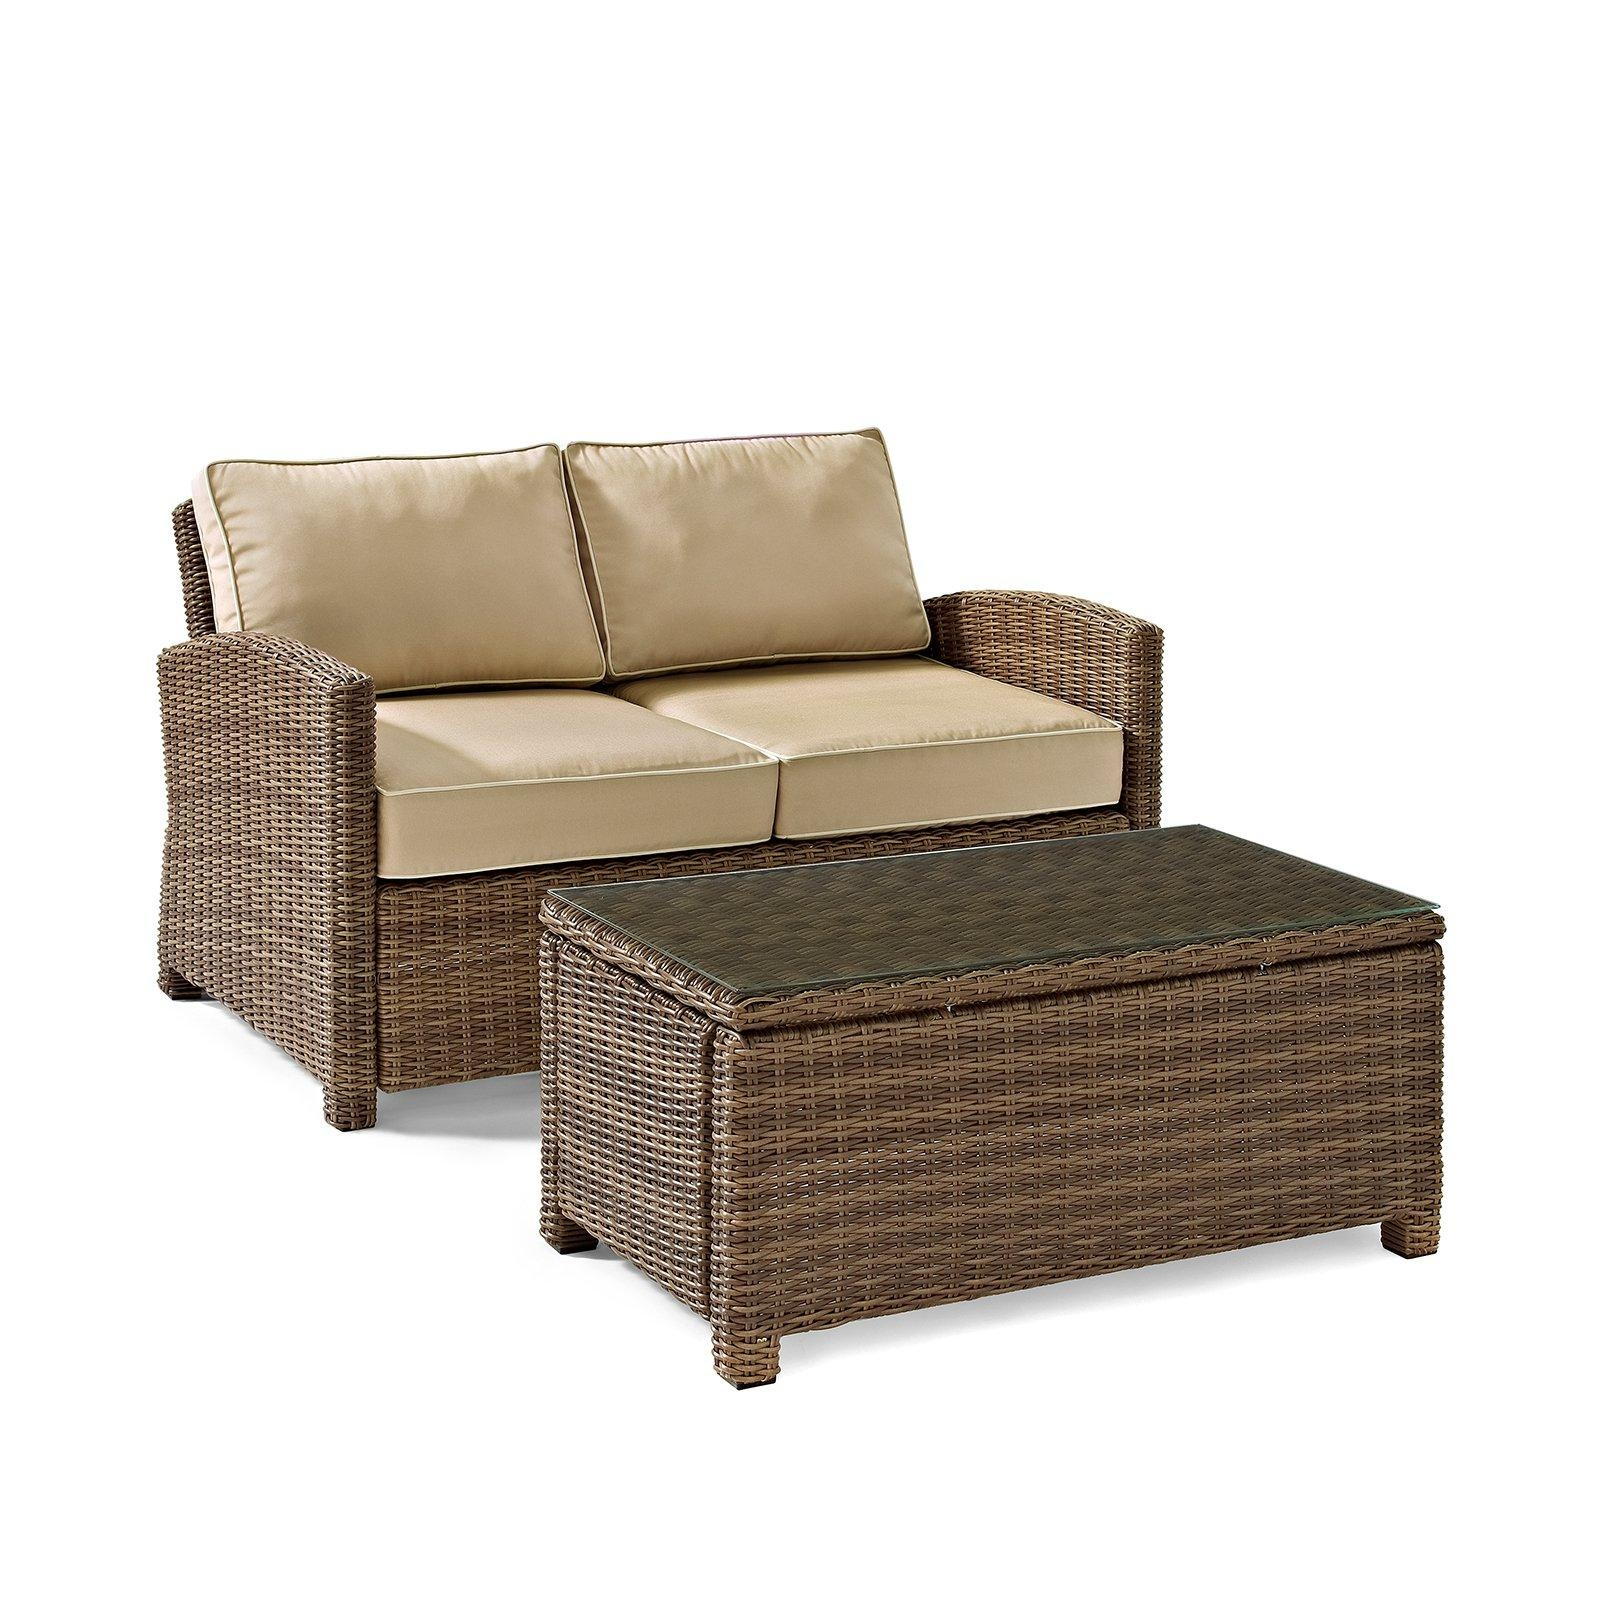 20 Top Outdoor Sofa Chairs Sofa Ideas